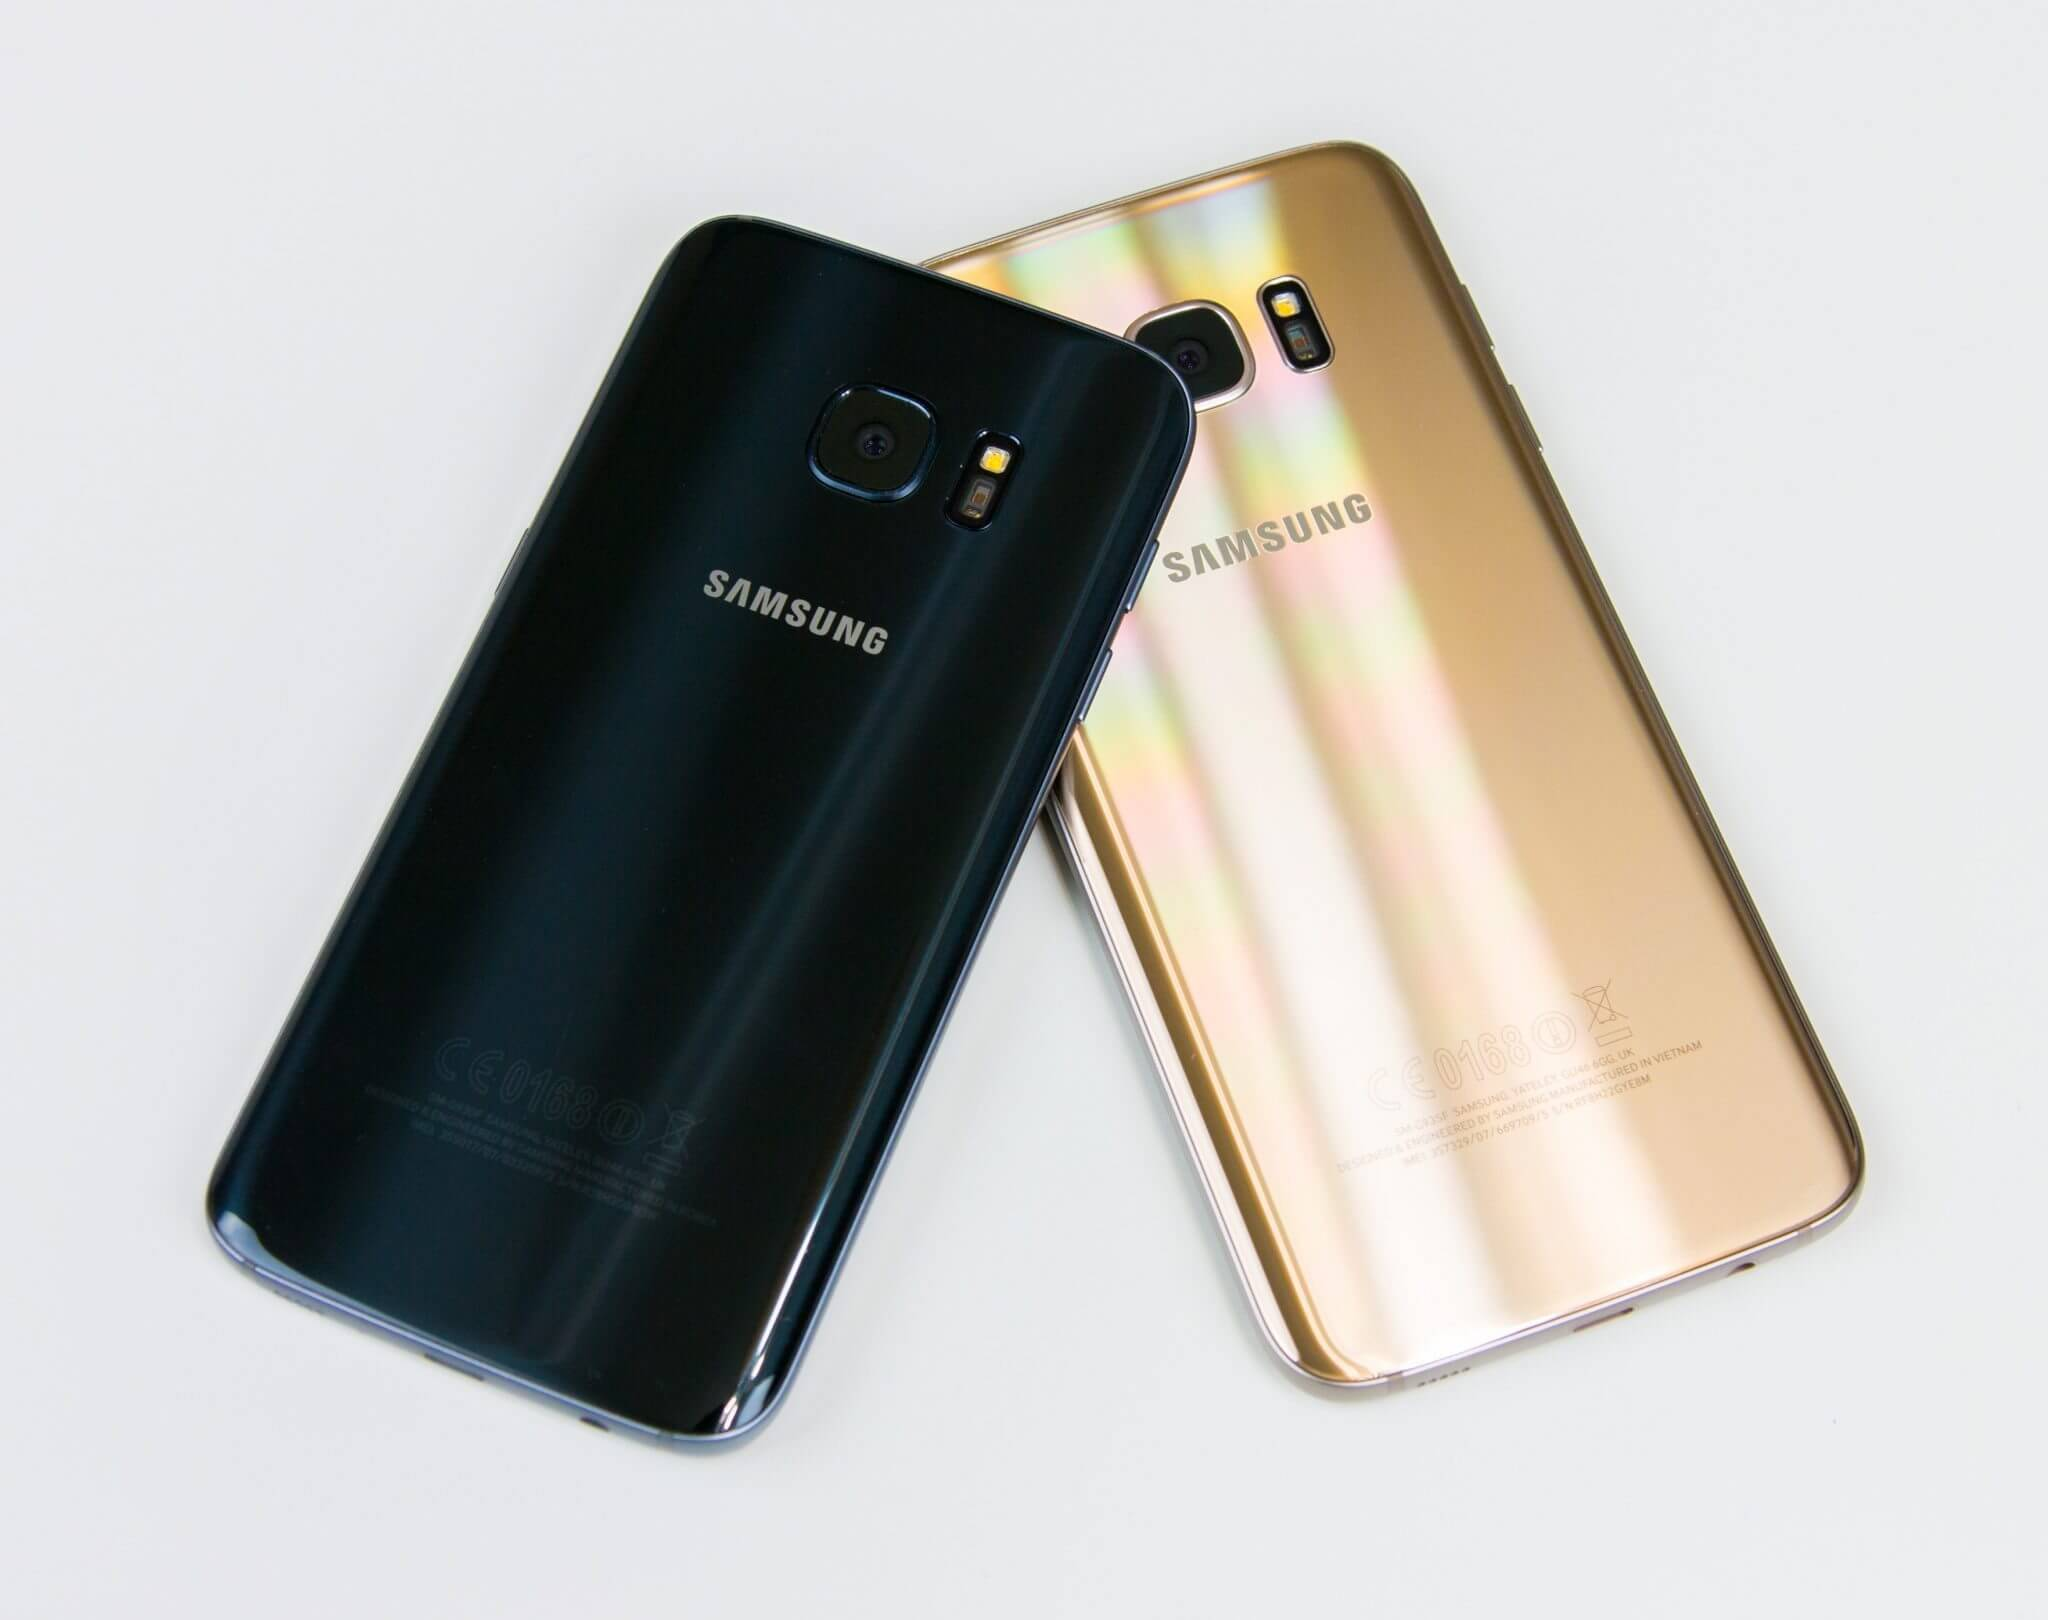 Samsung Galaxy S7 vs S7 Edge 11